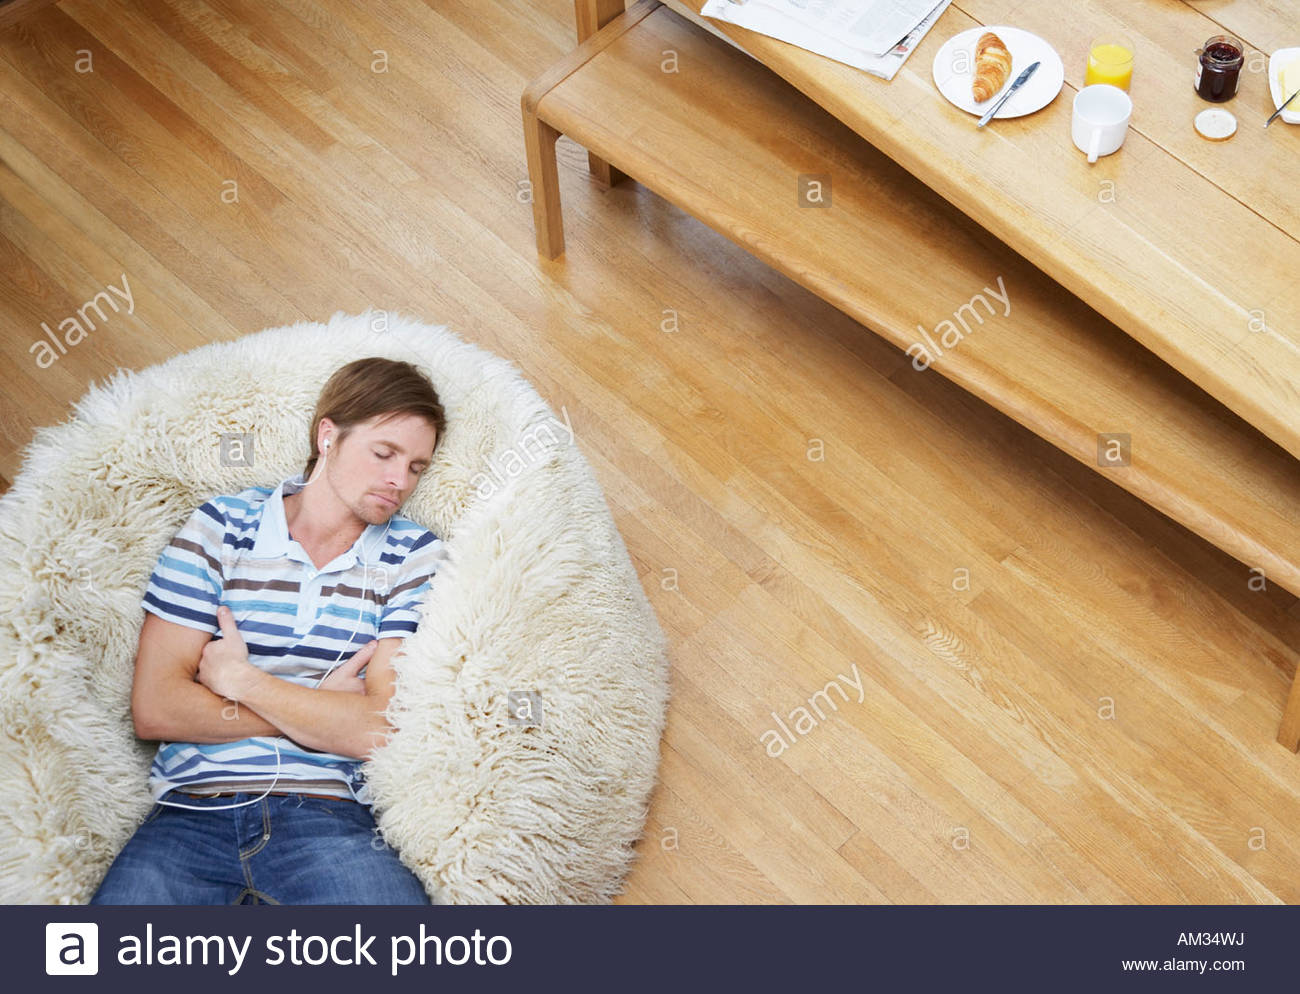 Man on a furry bean bag chair wearing earbuds - Stock Image